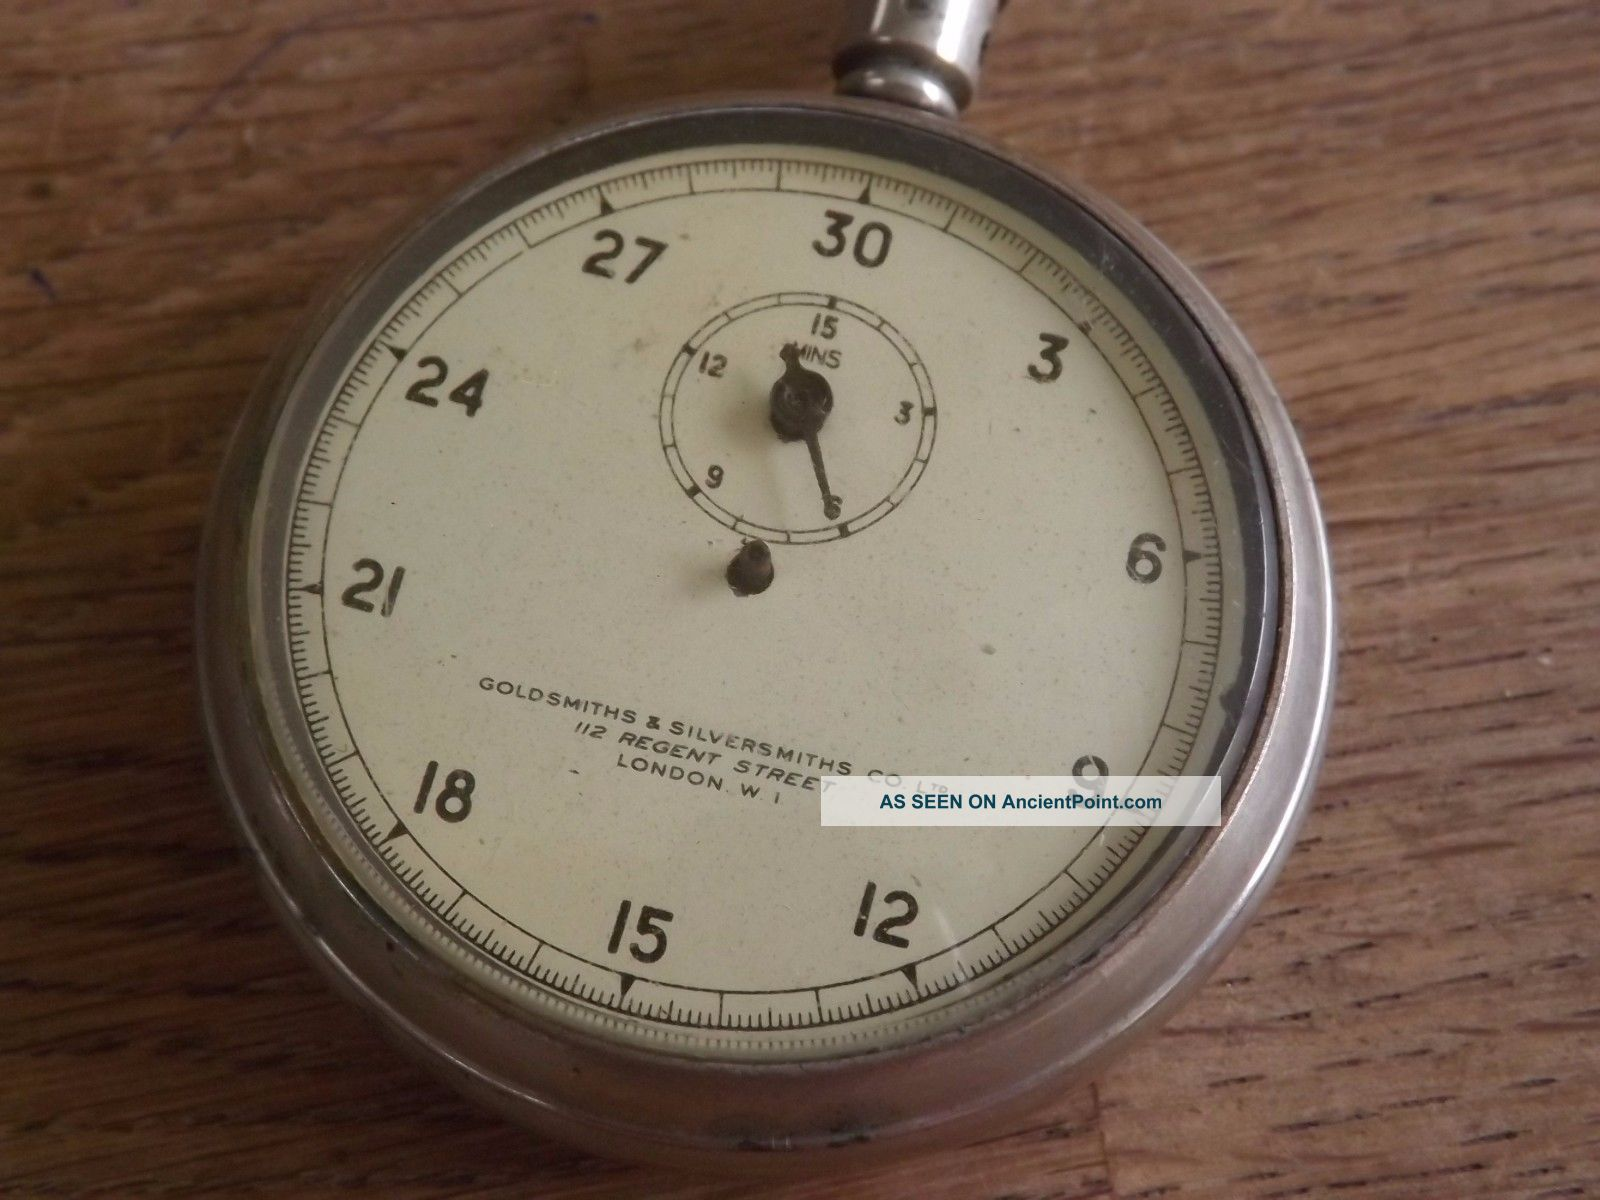 Goldsmiths & Silversmiths Antique Stopwatch Other Antique Science Equip photo